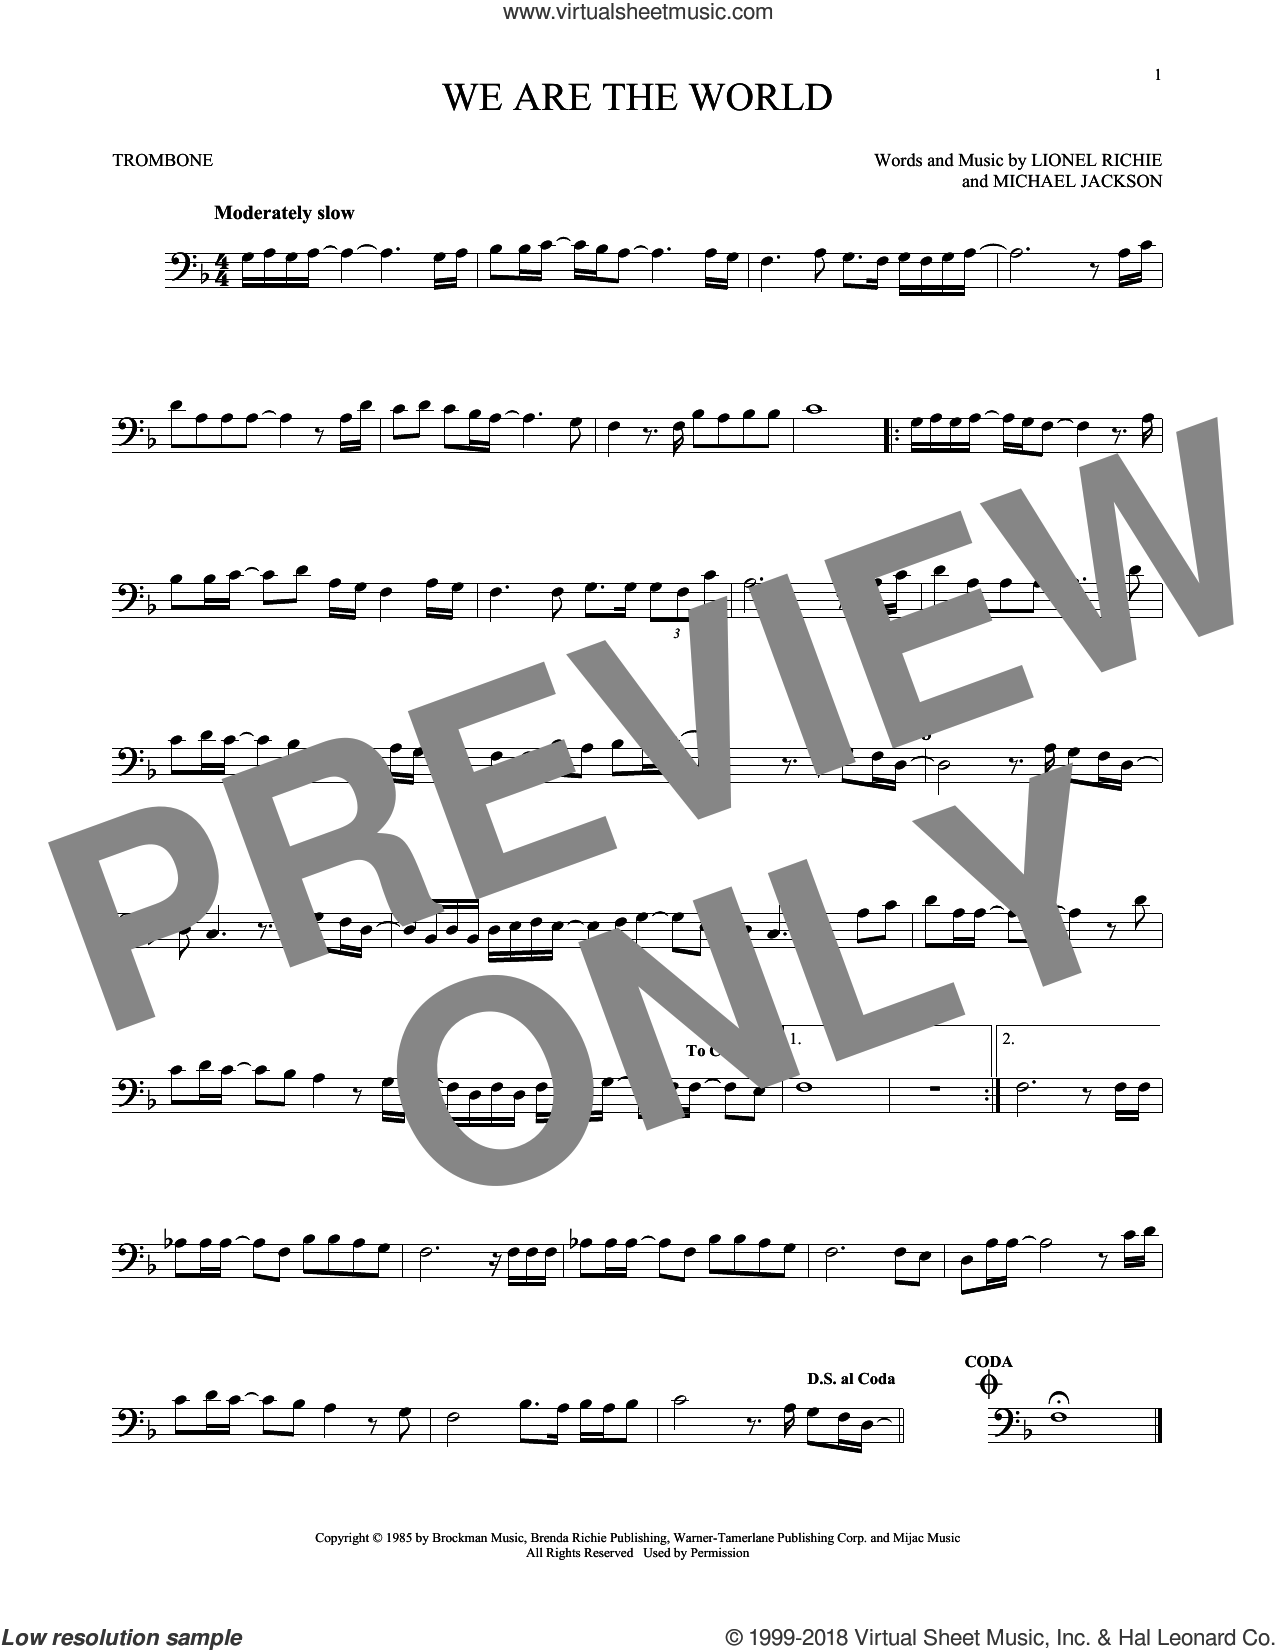 We Are The World sheet music for trombone solo by Michael Jackson, USA For Africa, Lionel Richie and Lionel Richie & Michael Jackson, intermediate skill level